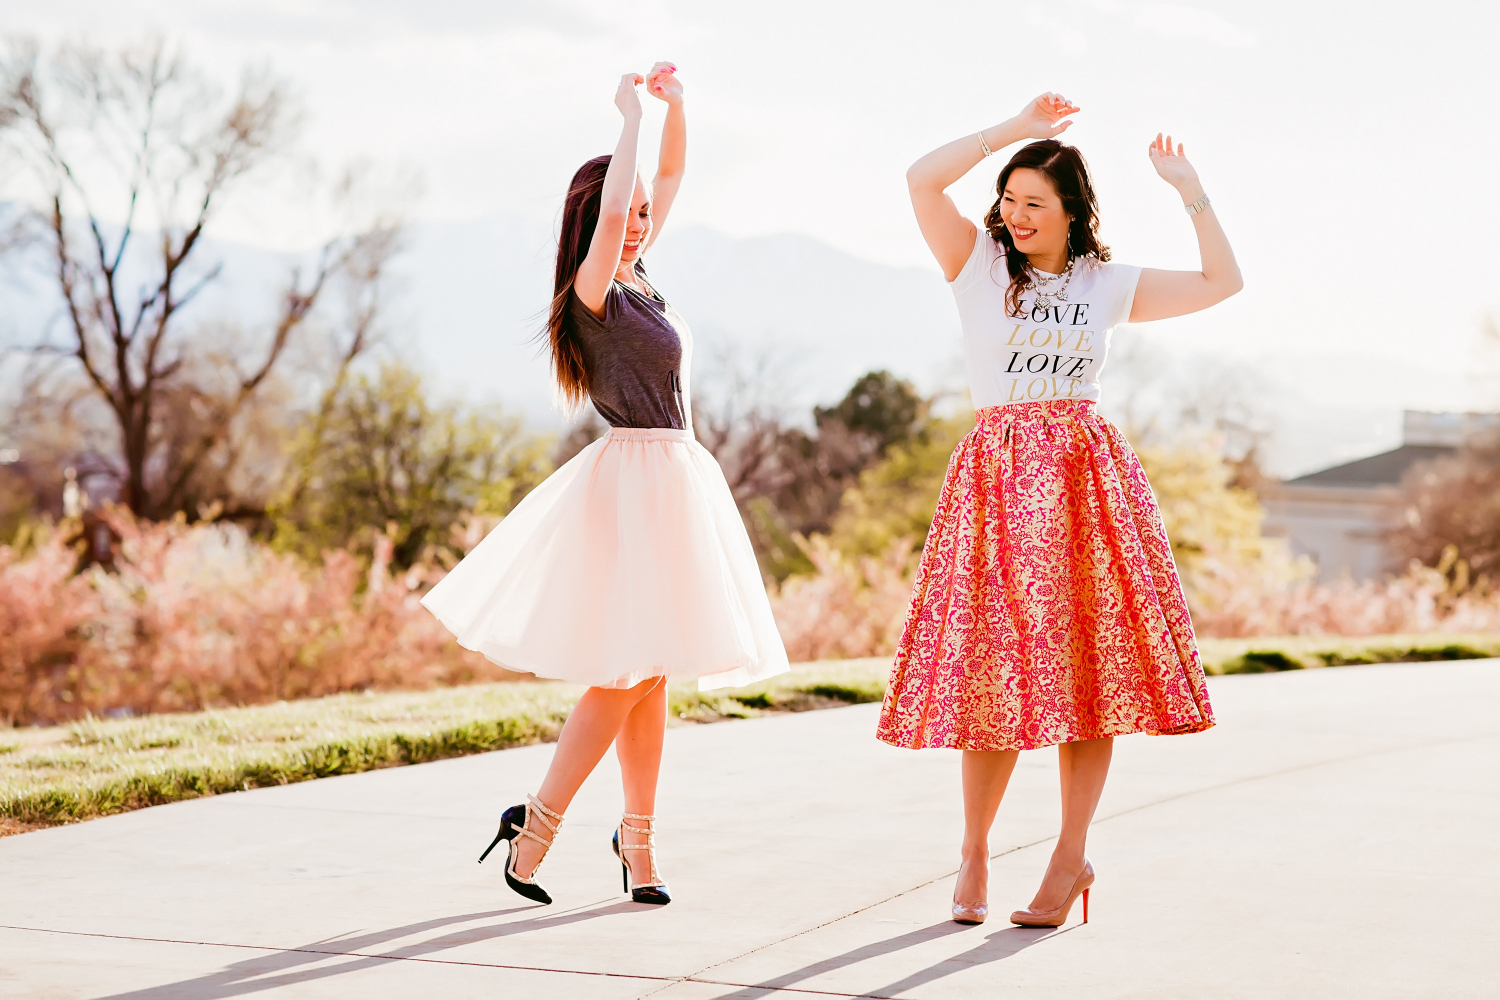 Sandy a la Mode | Fashion Blogger Graphic Tee and Pretty Skirt with Lovely Deseret